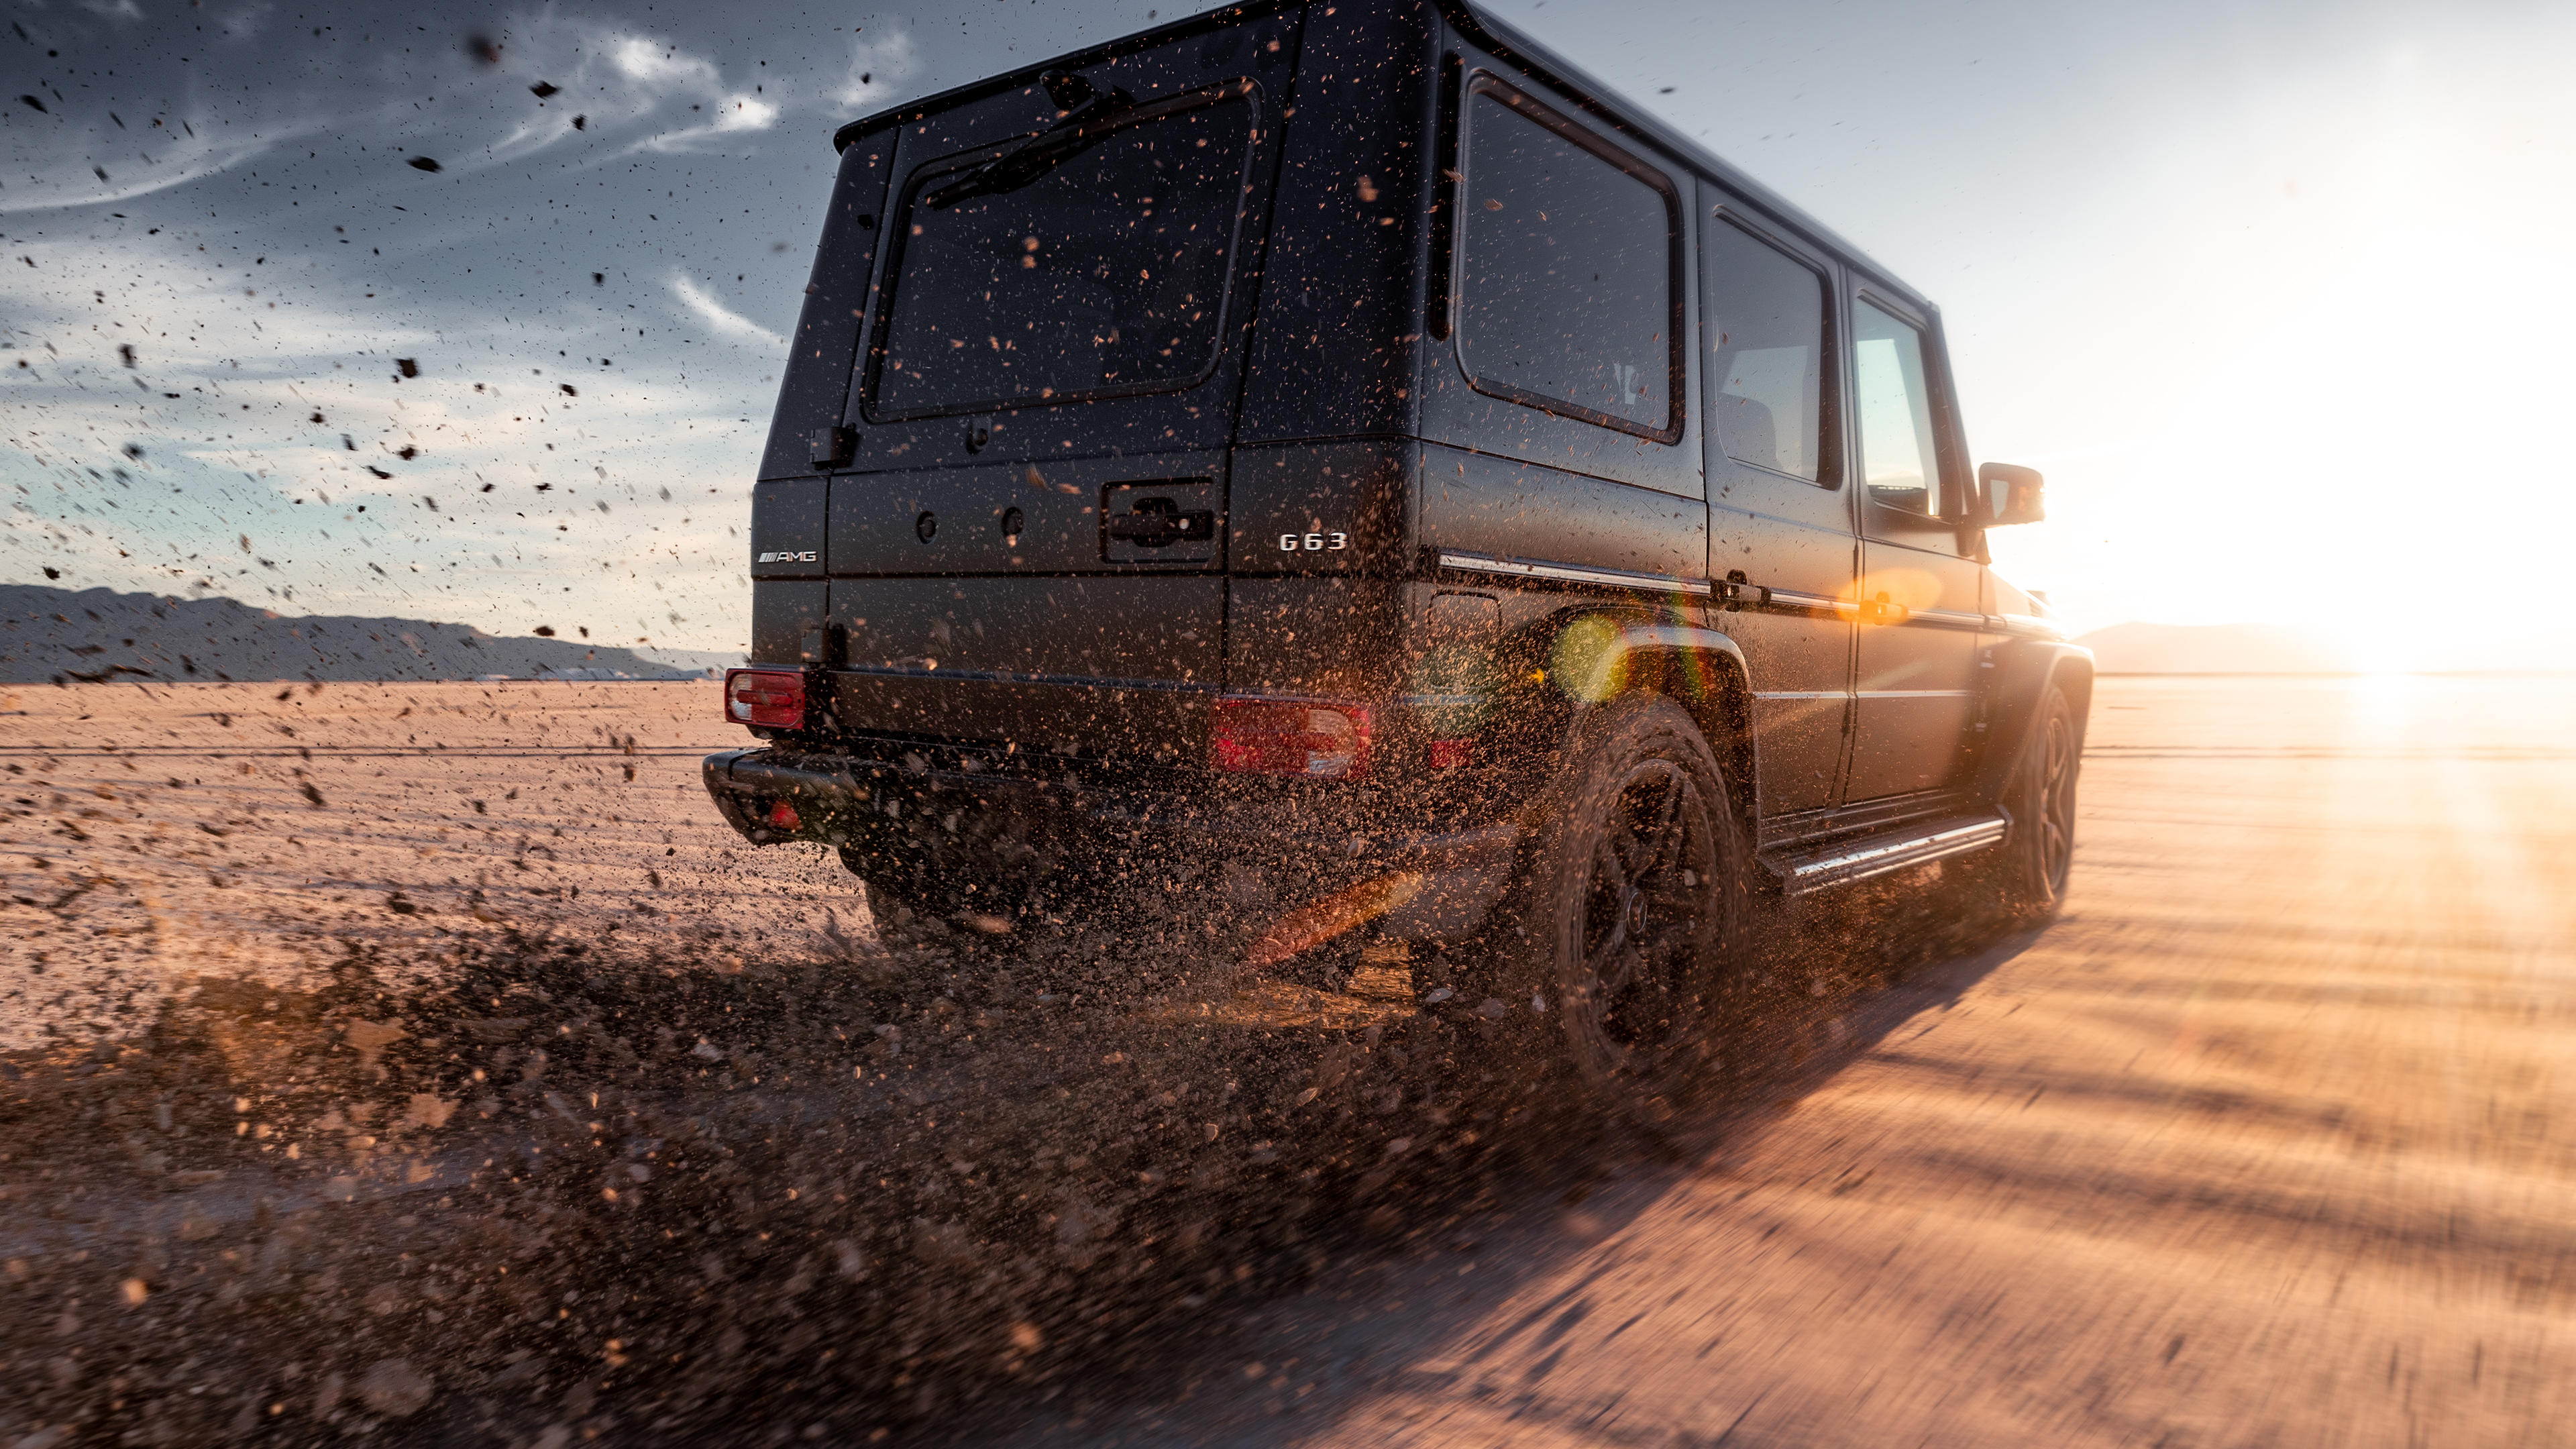 g63 amg rear 1569189165 - G63 AMG Rear - suv wallpapers, mercedes wallpapers, mercedes g class wallpapers, mercedes benz wallpapers, hd-wallpapers, cars wallpapers, behance wallpapers, 4k-wallpapers